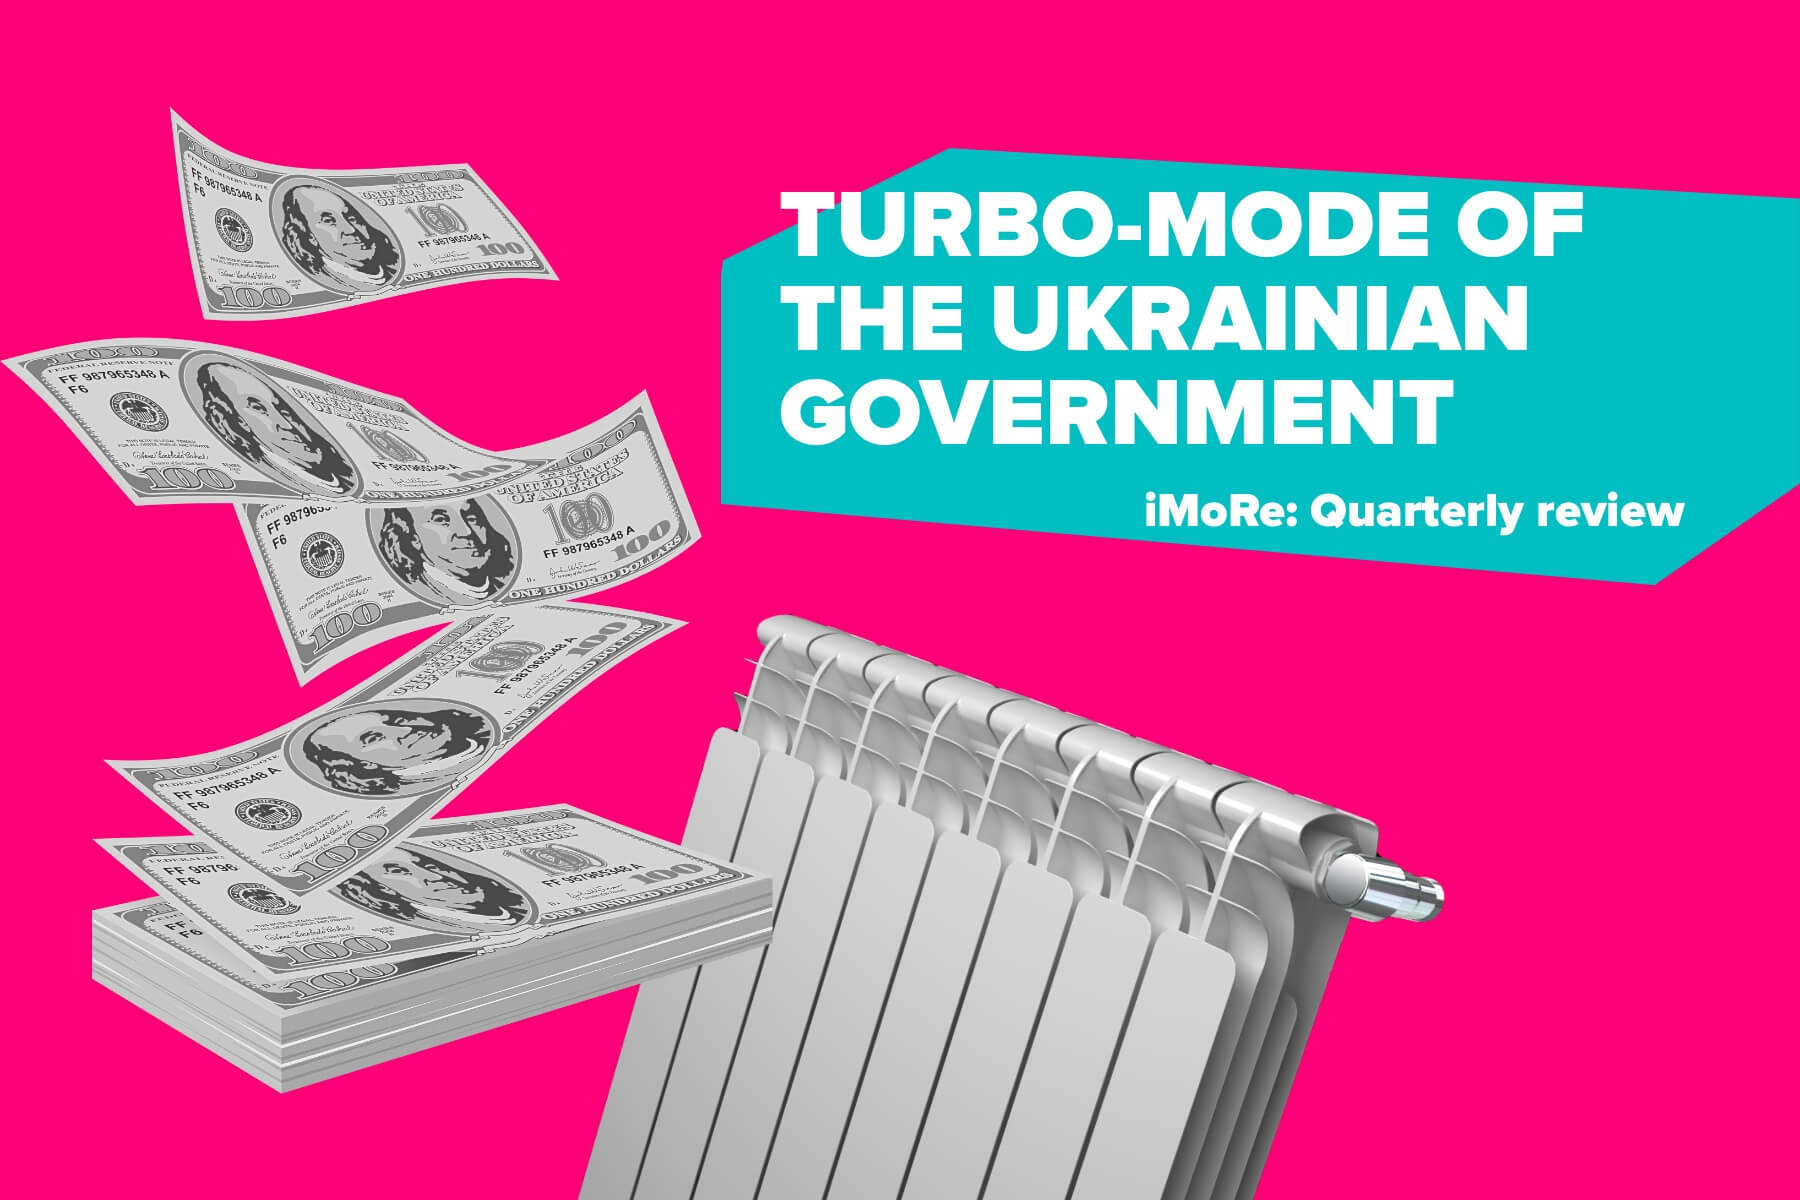 Turbo-mode of the Ukrainian Government: Reforms in the 4th Quarter of 2019